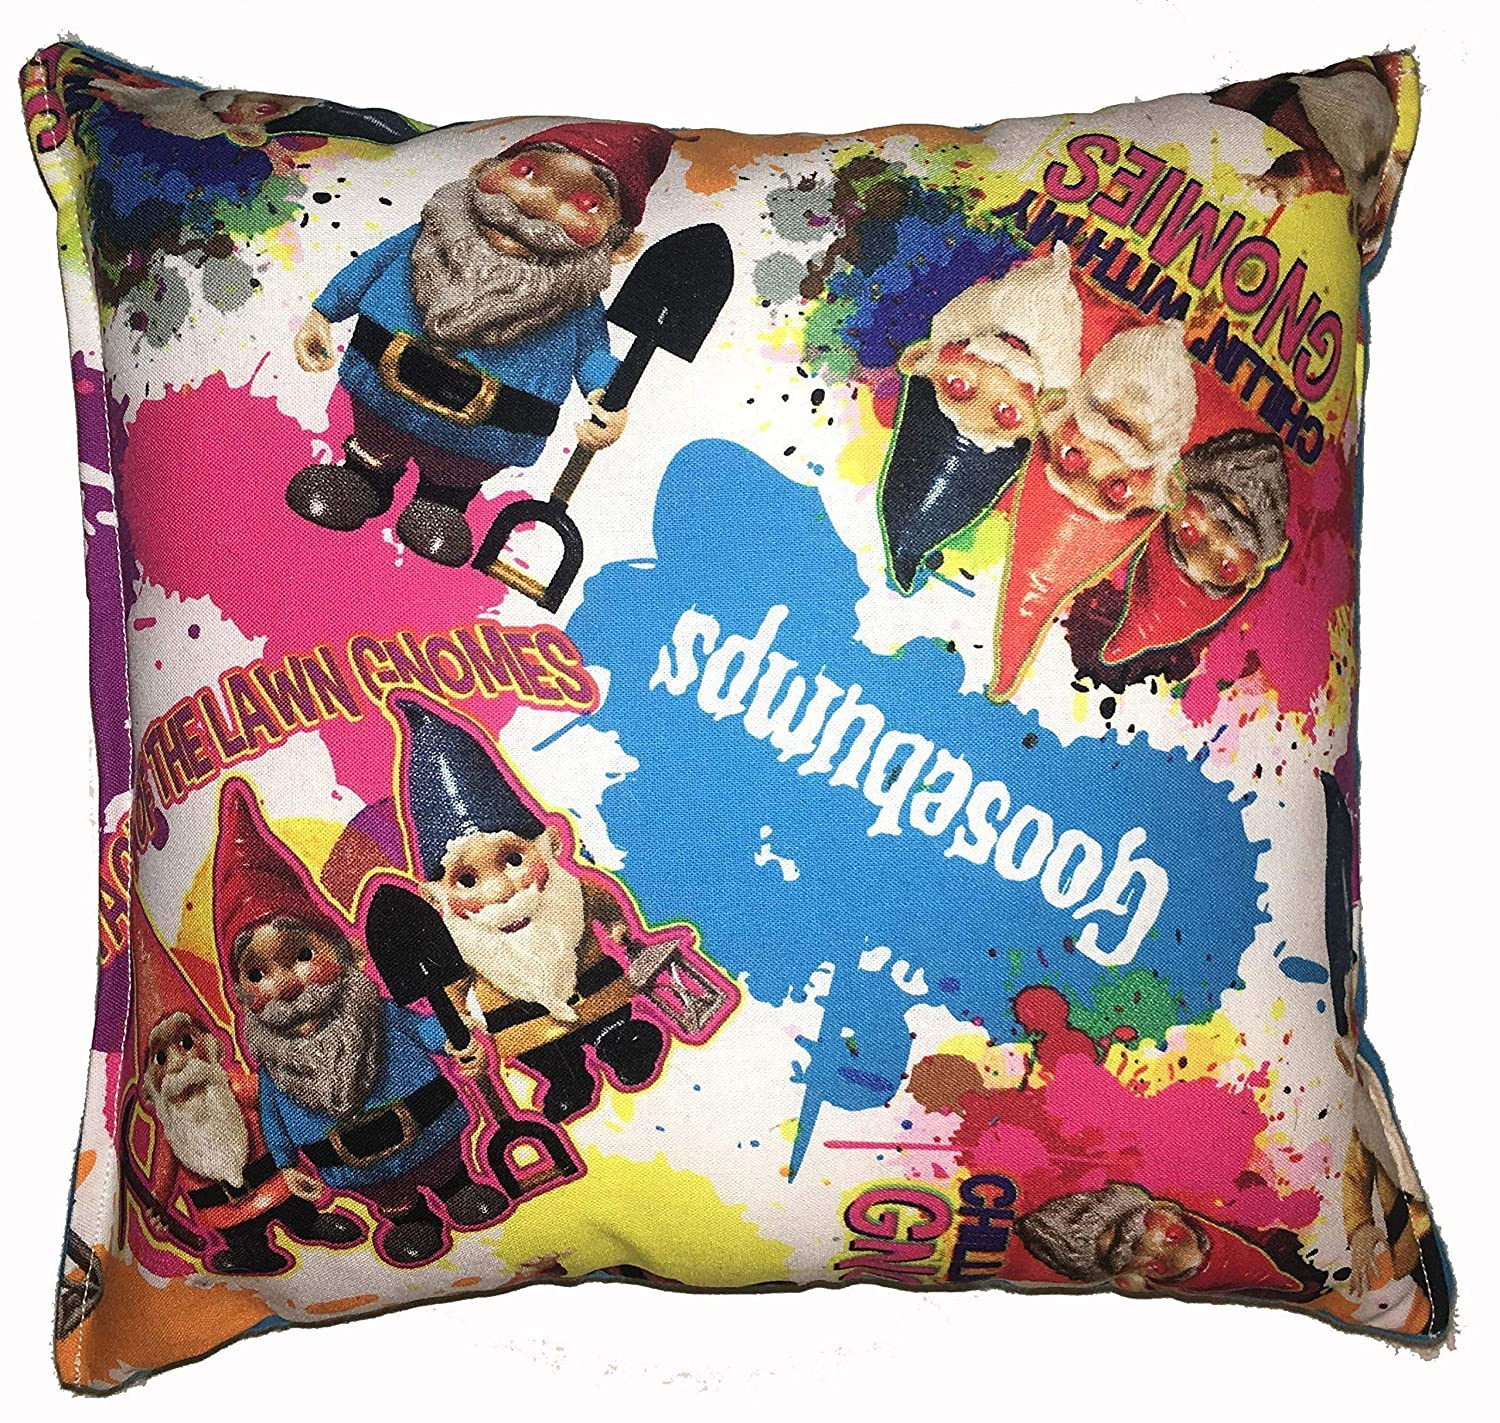 Goosebumps Many popular brands Pillow Gnomes All Special price for a limited time Our Handmade Hyp Pillows Are